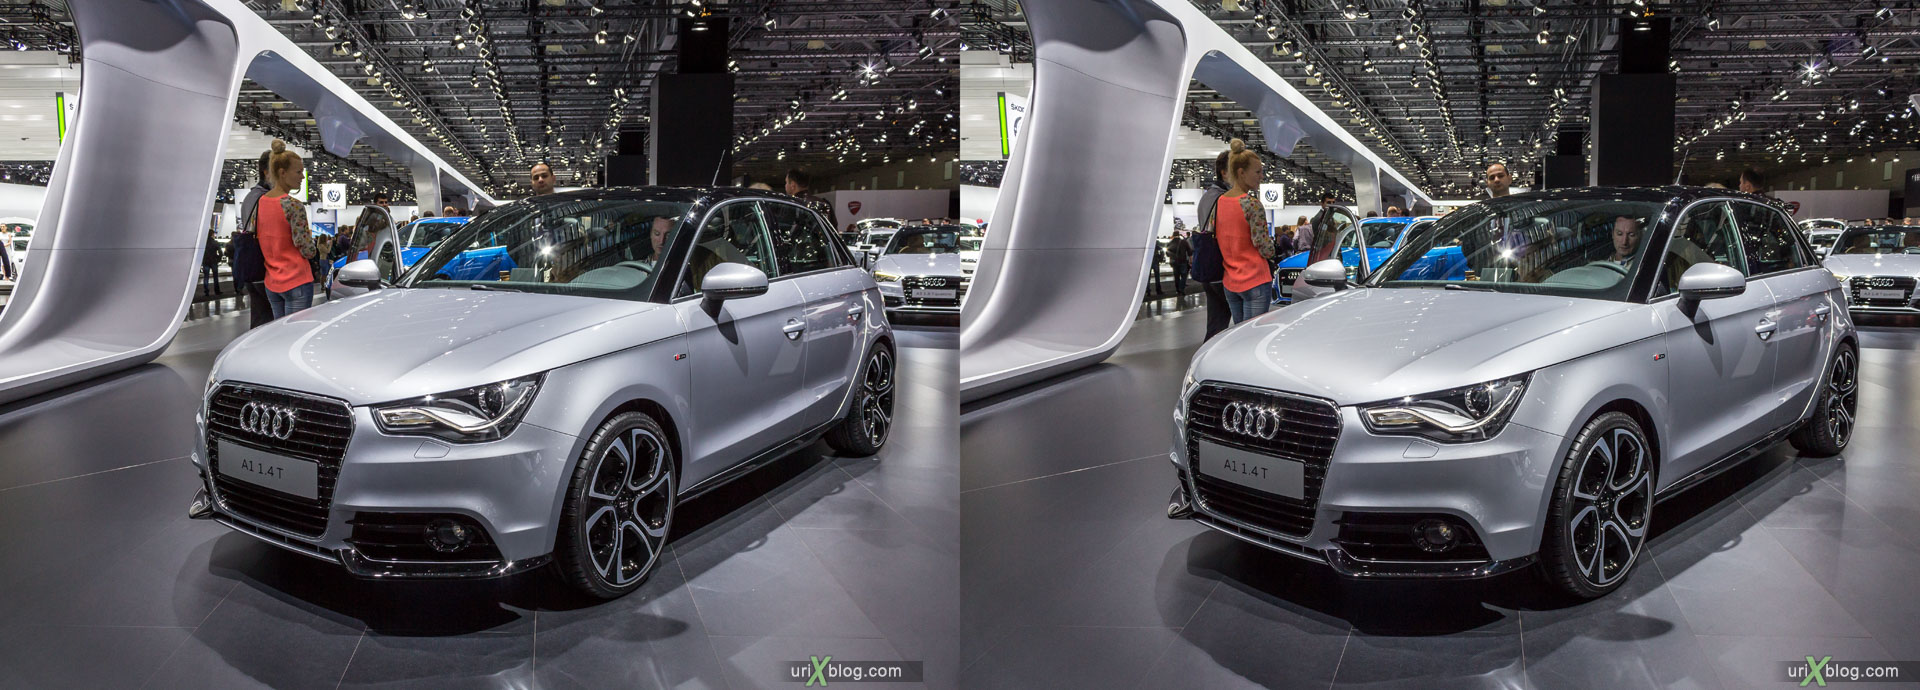 Audi A1 1.4T, Moscow International Automobile Salon 2014, MIAS 2014, girls, models, Crocus Expo, Moscow, Russia, 3D, stereo pair, cross-eyed, crossview, cross view stereo pair, stereoscopic, 2014